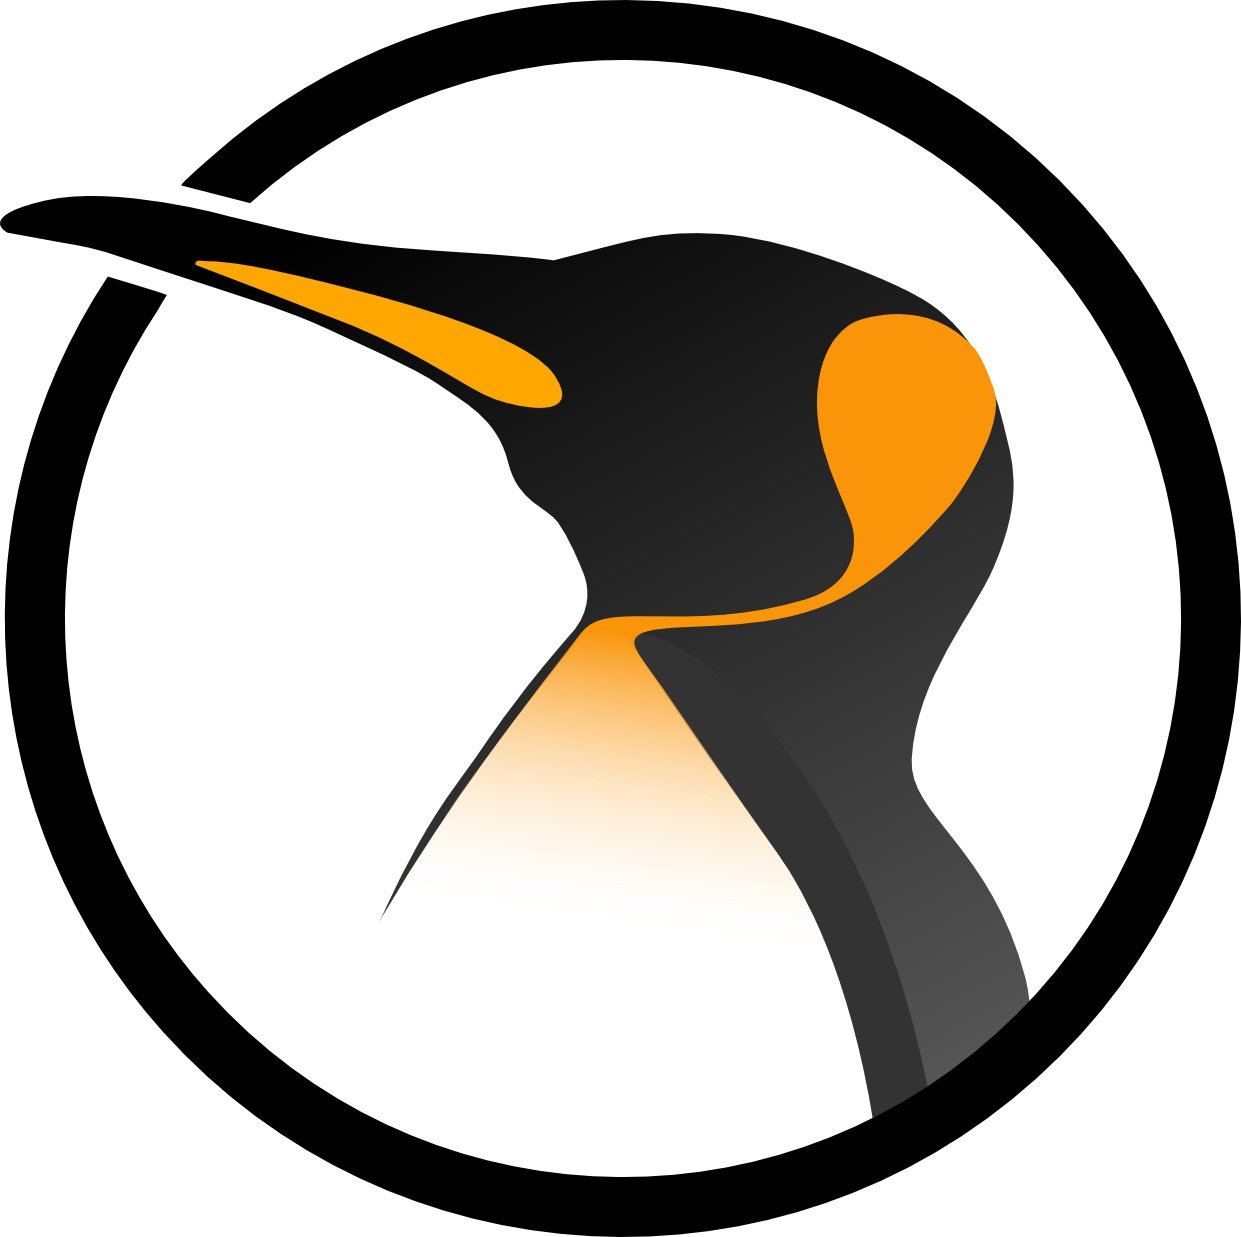 linux logo linux symbol meaning history and evolution